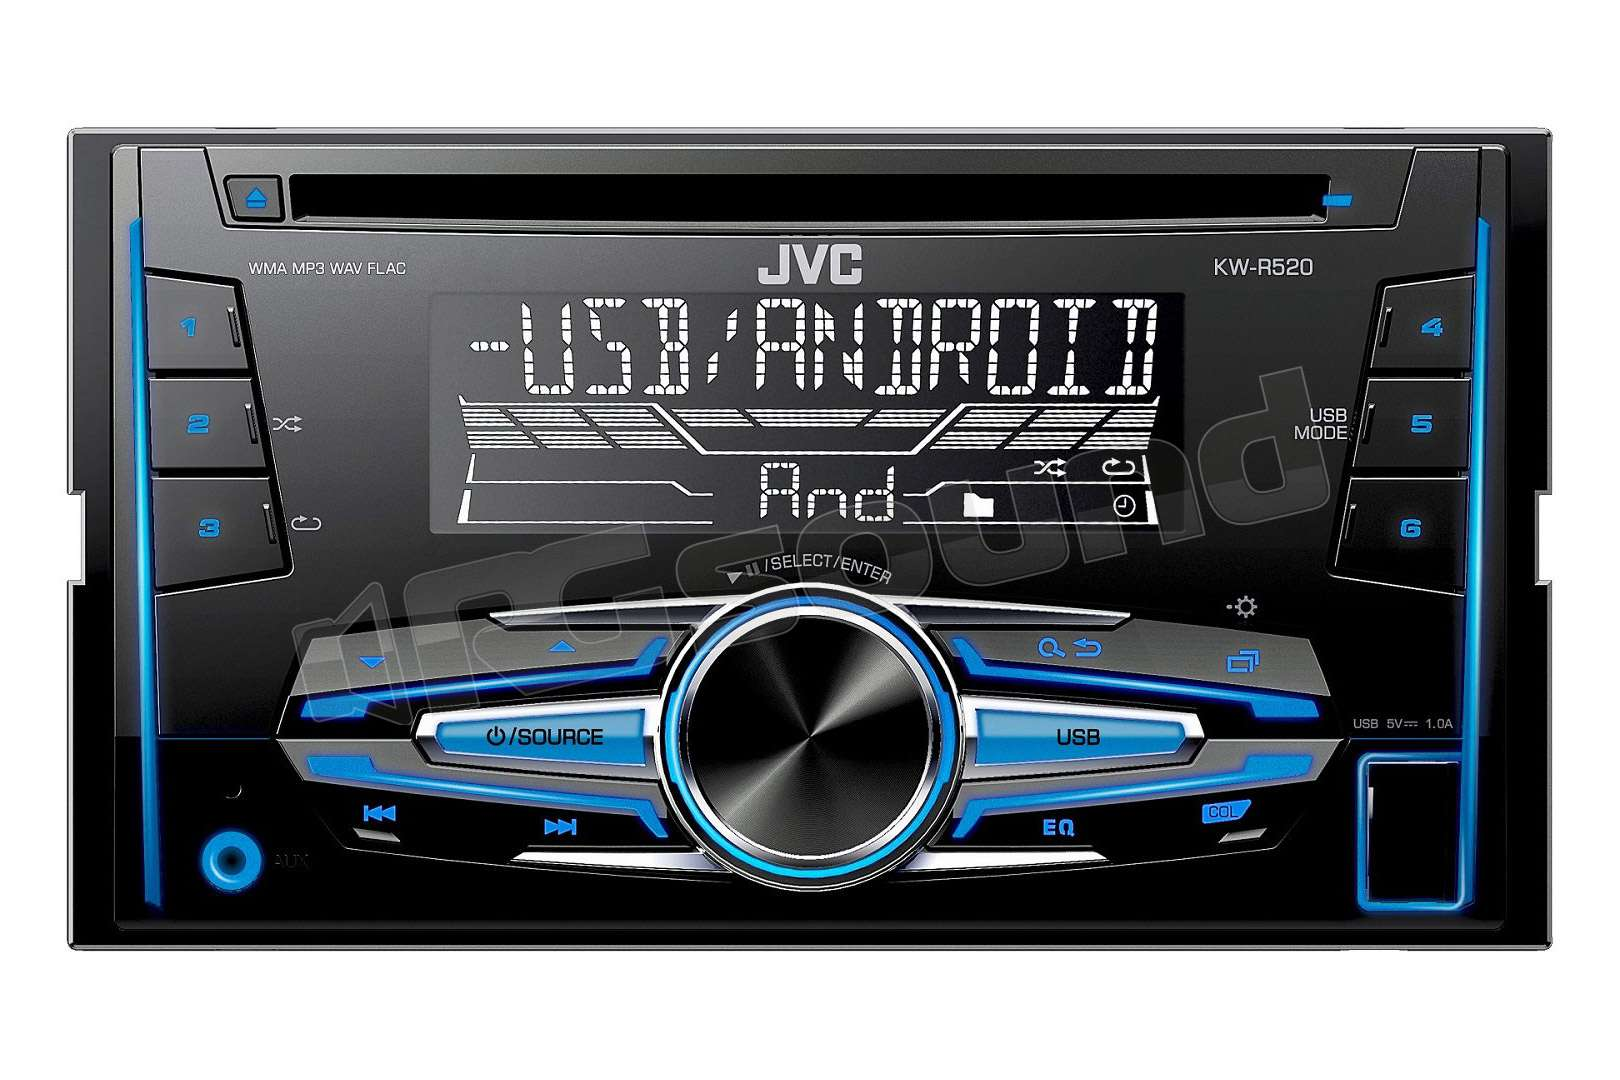 jvc kw r520 sintolettore cd 2din con usb e aux autoradio. Black Bedroom Furniture Sets. Home Design Ideas